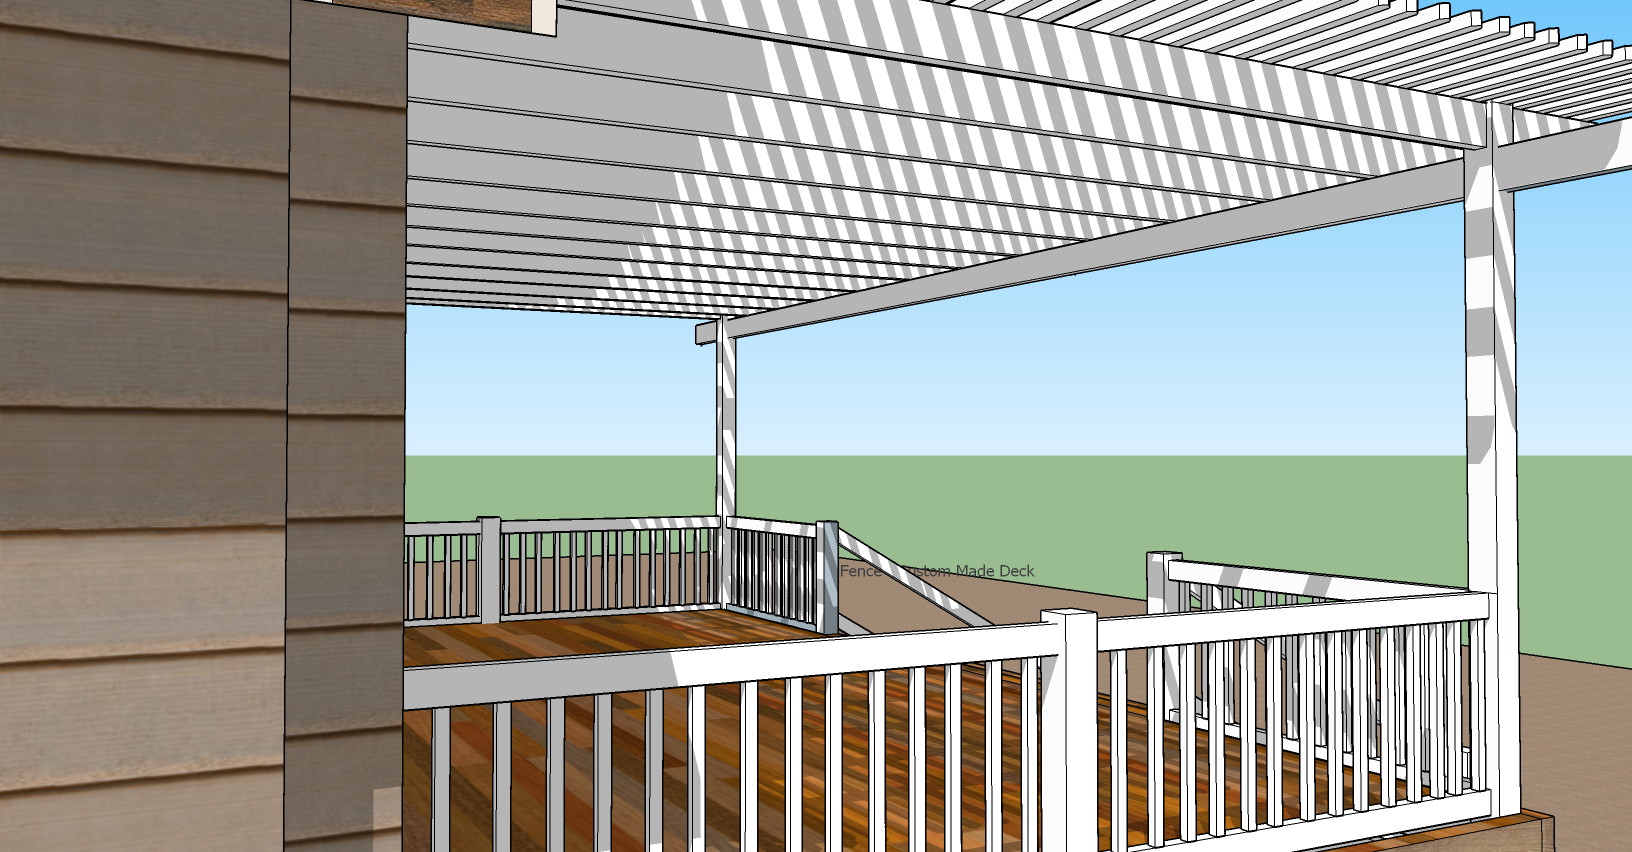 Picket White Vinyl Patio Cover - By Torrance Vinyl Fence Company